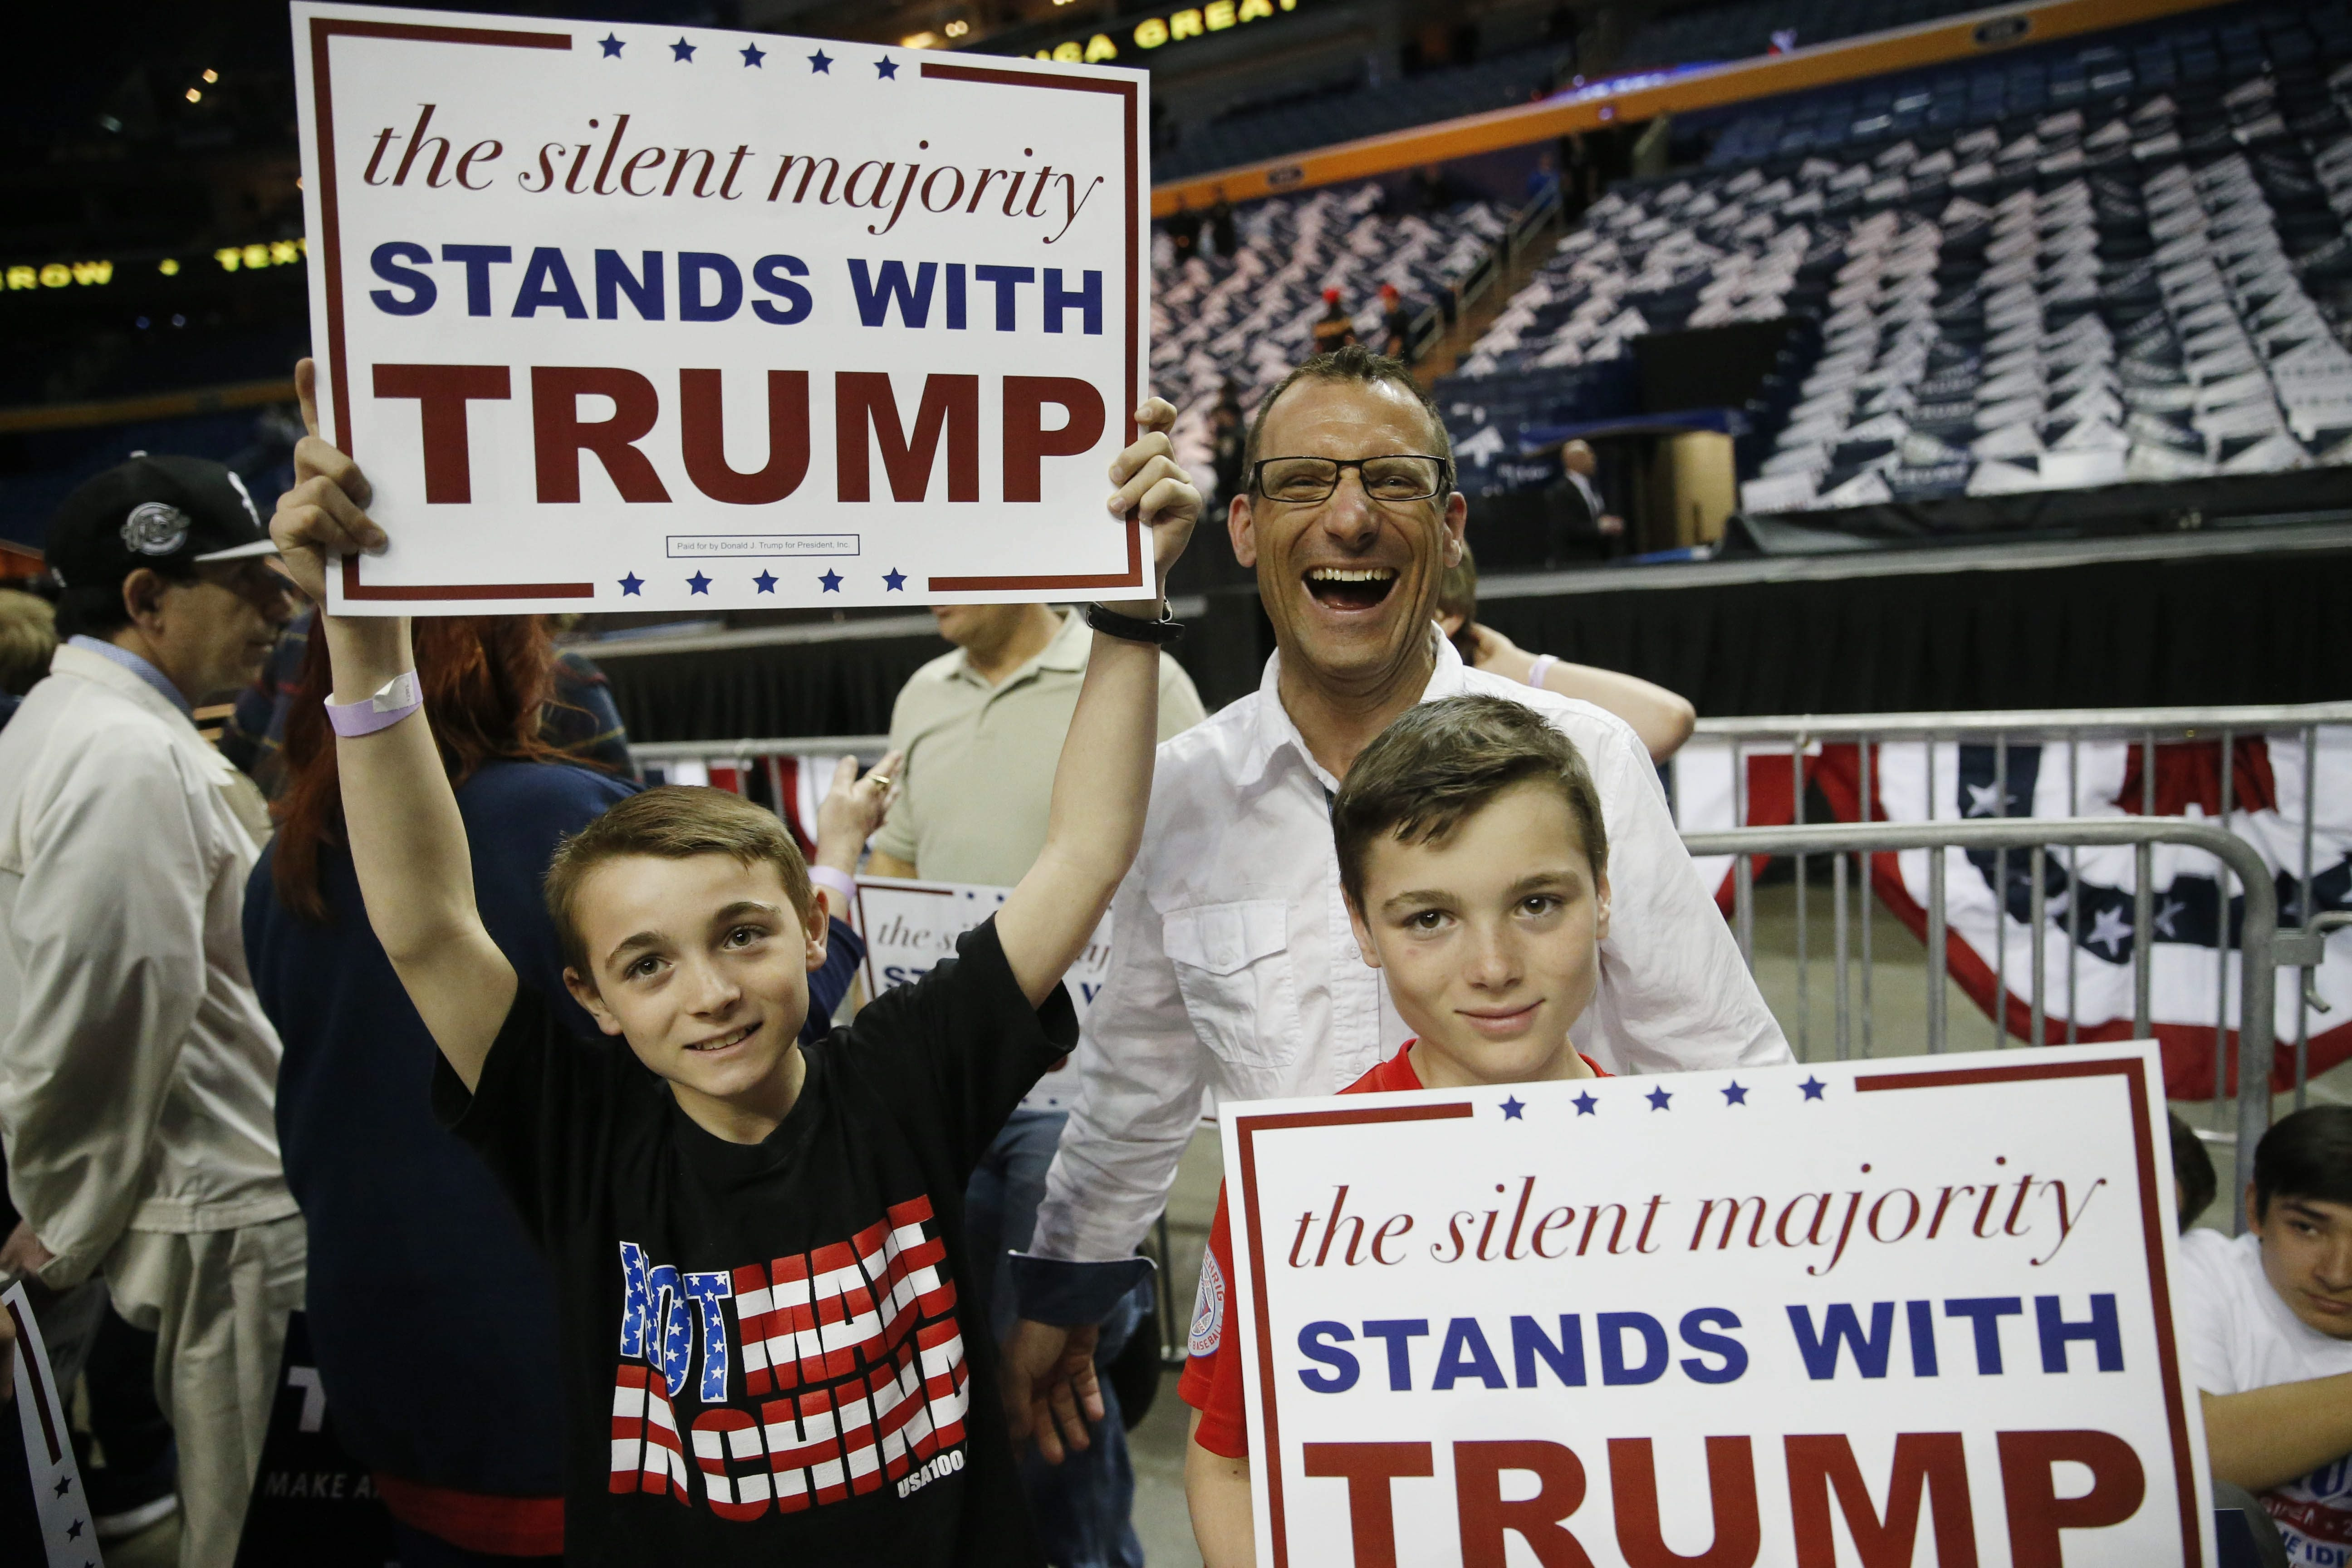 Young, old and older, supporters of Donald Trump gathered Monday for a political rally at First Niagara Center in Buffalo. The crowd was estimated at more than 12,000 people.